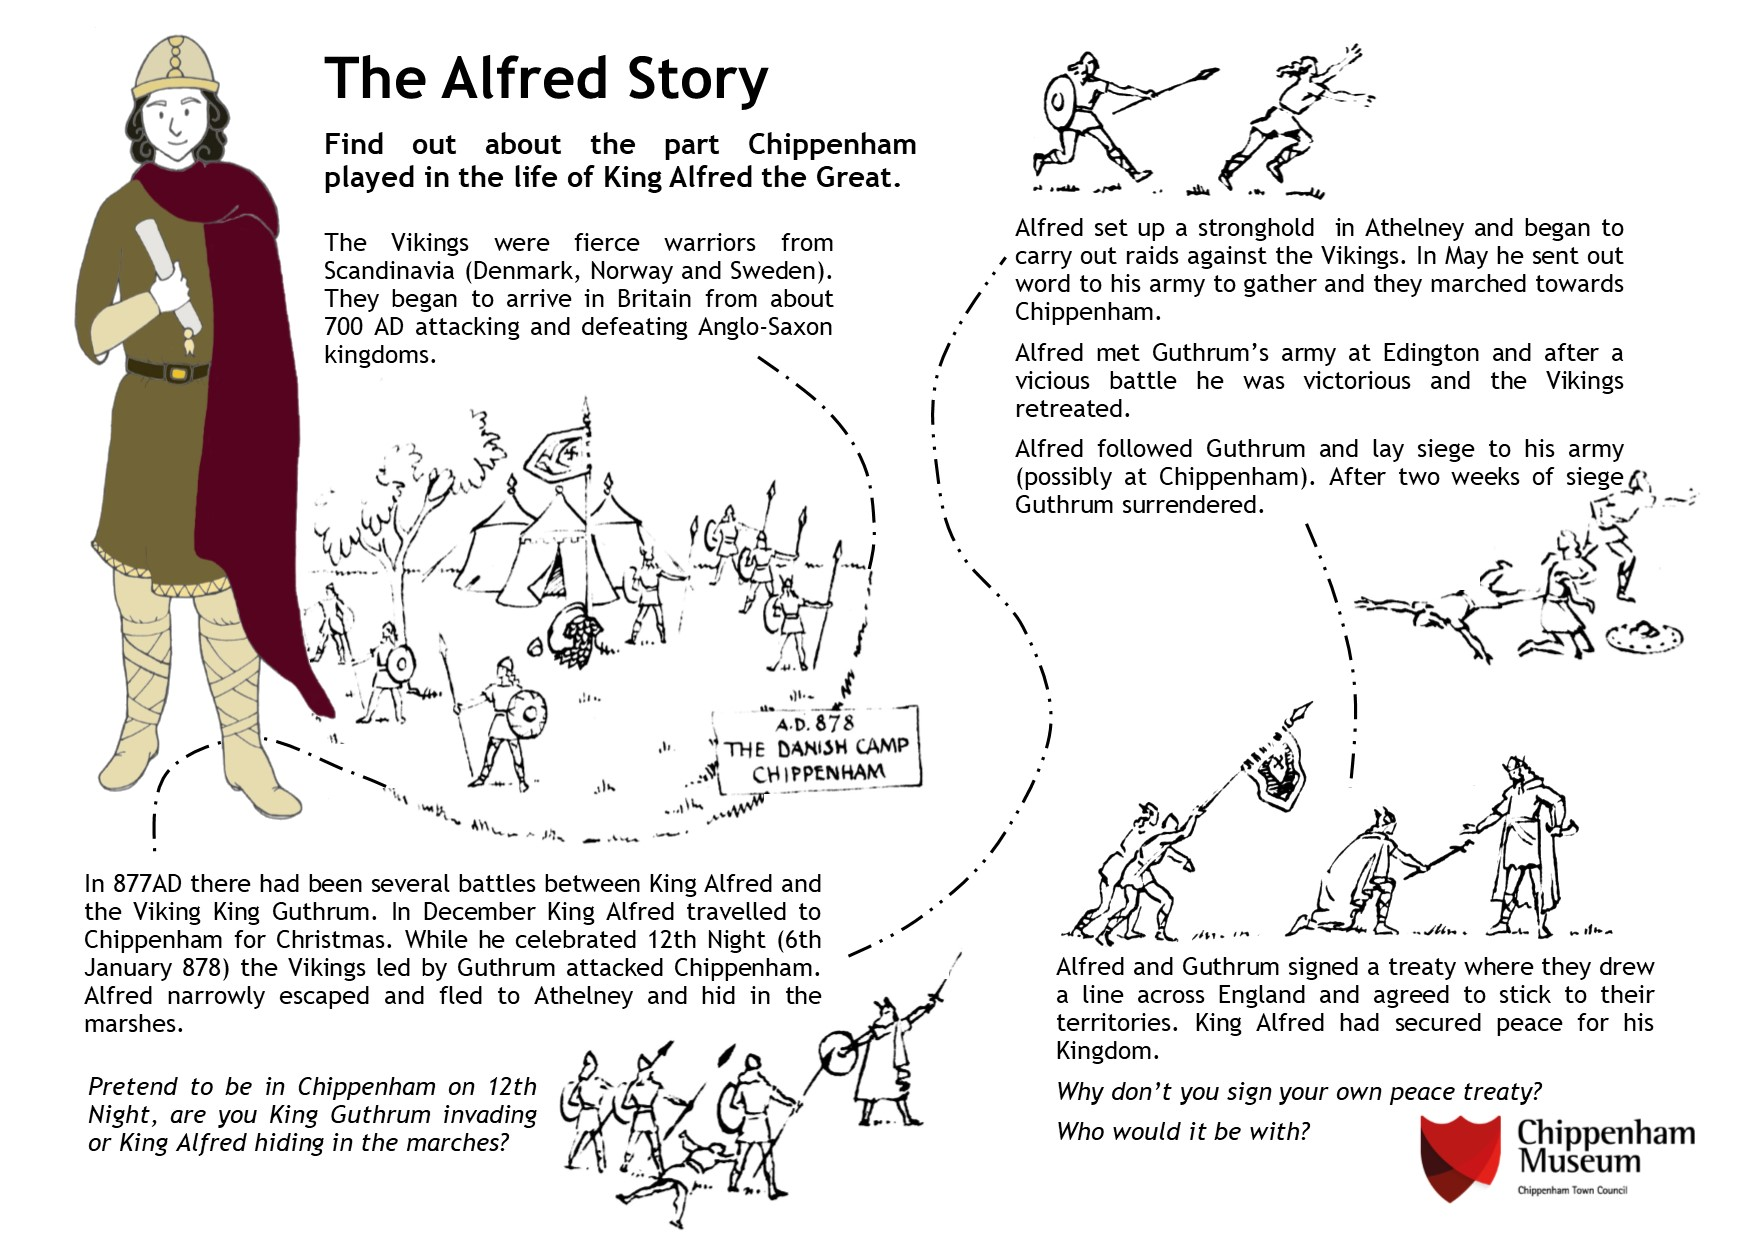 The Alfred Story information sheet